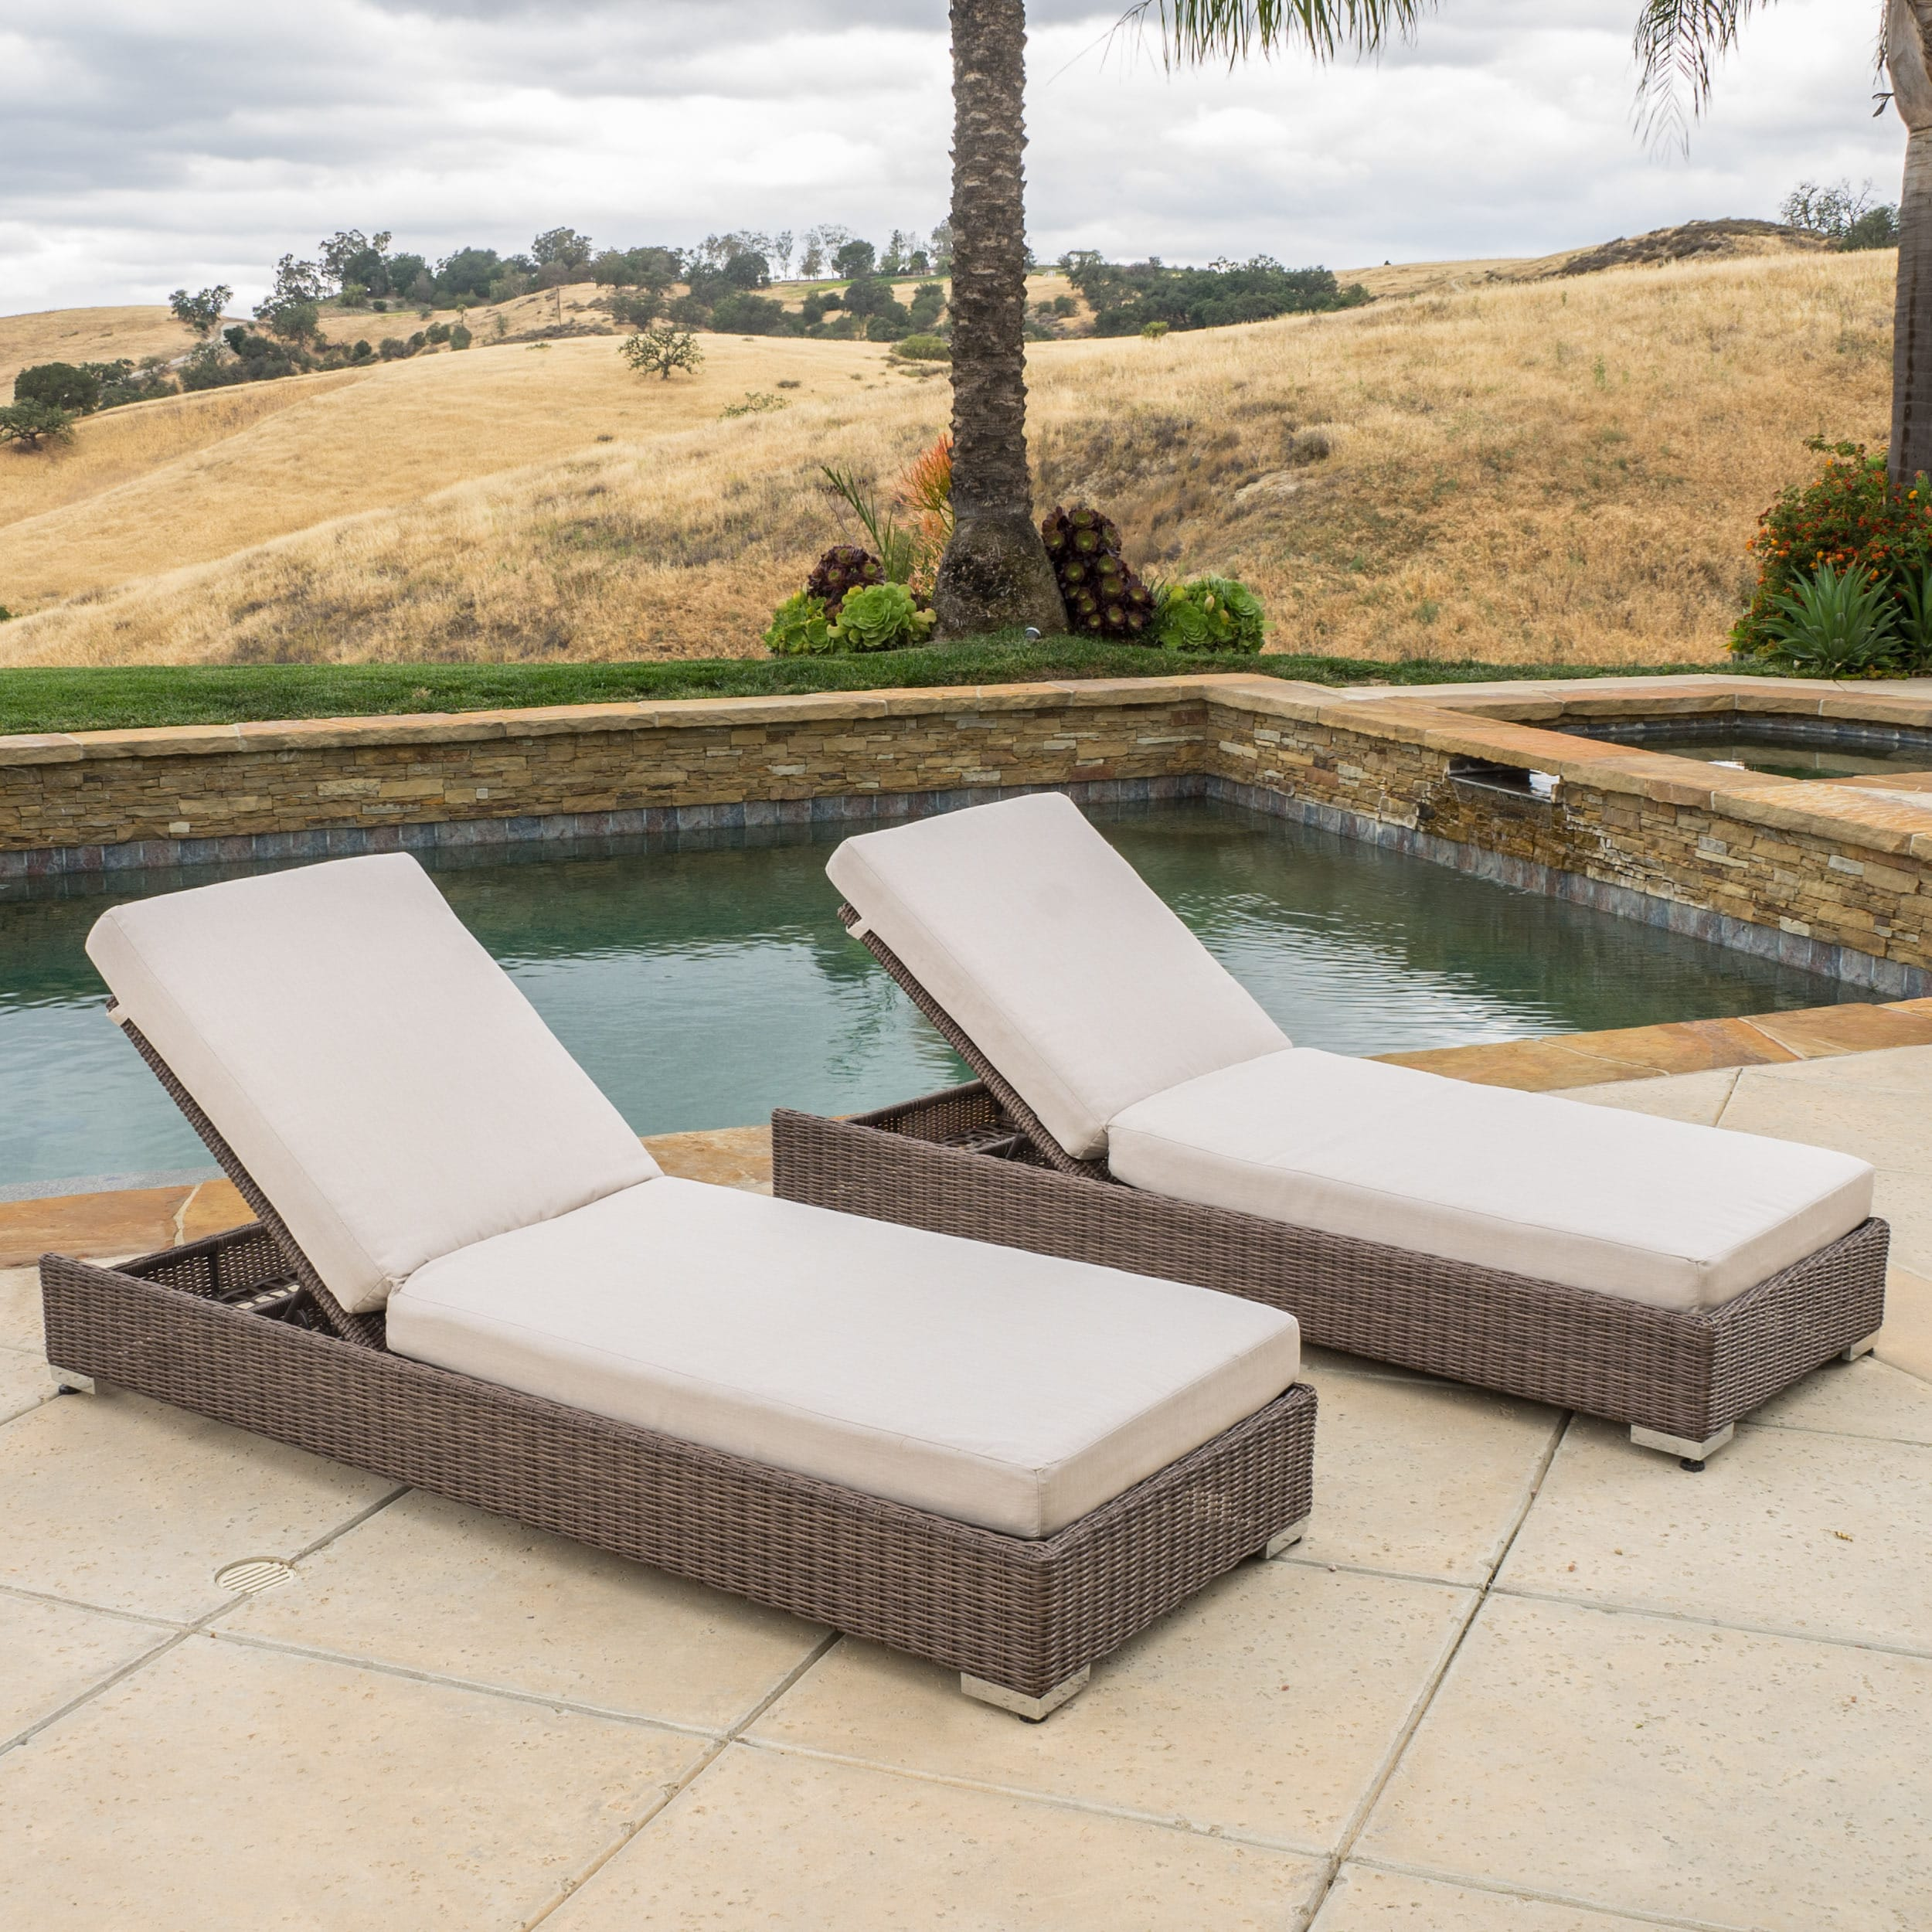 Chaise Barcelona Barcelona Outdoor Wicker Chaise Lounge With Sunbrella Cushions Set Of 2 By Christopher Knight Home